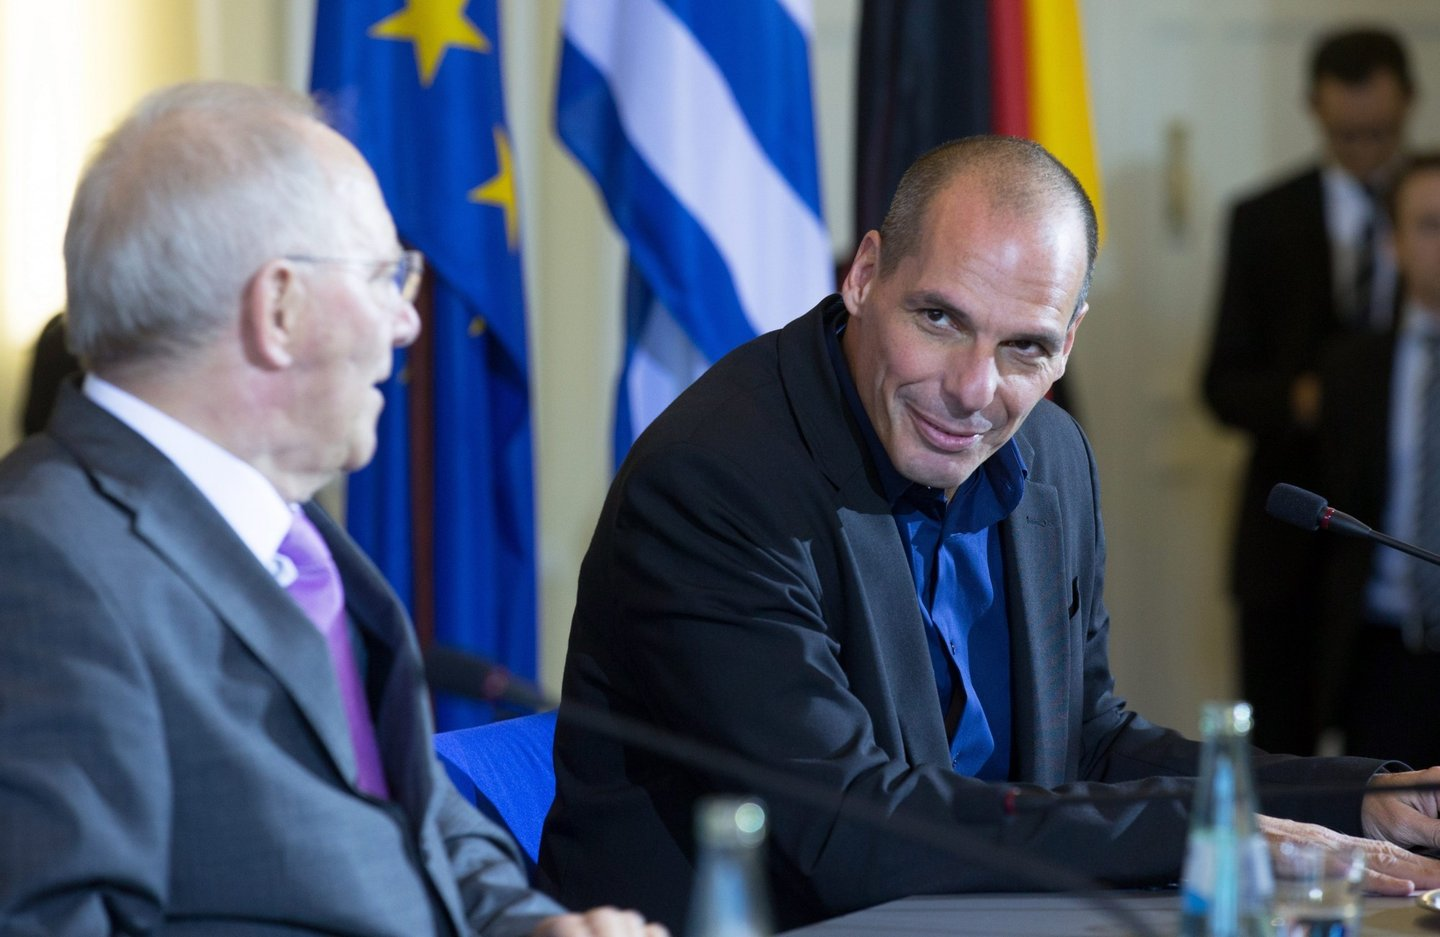 Greek finance minister Varoufakis in Germany